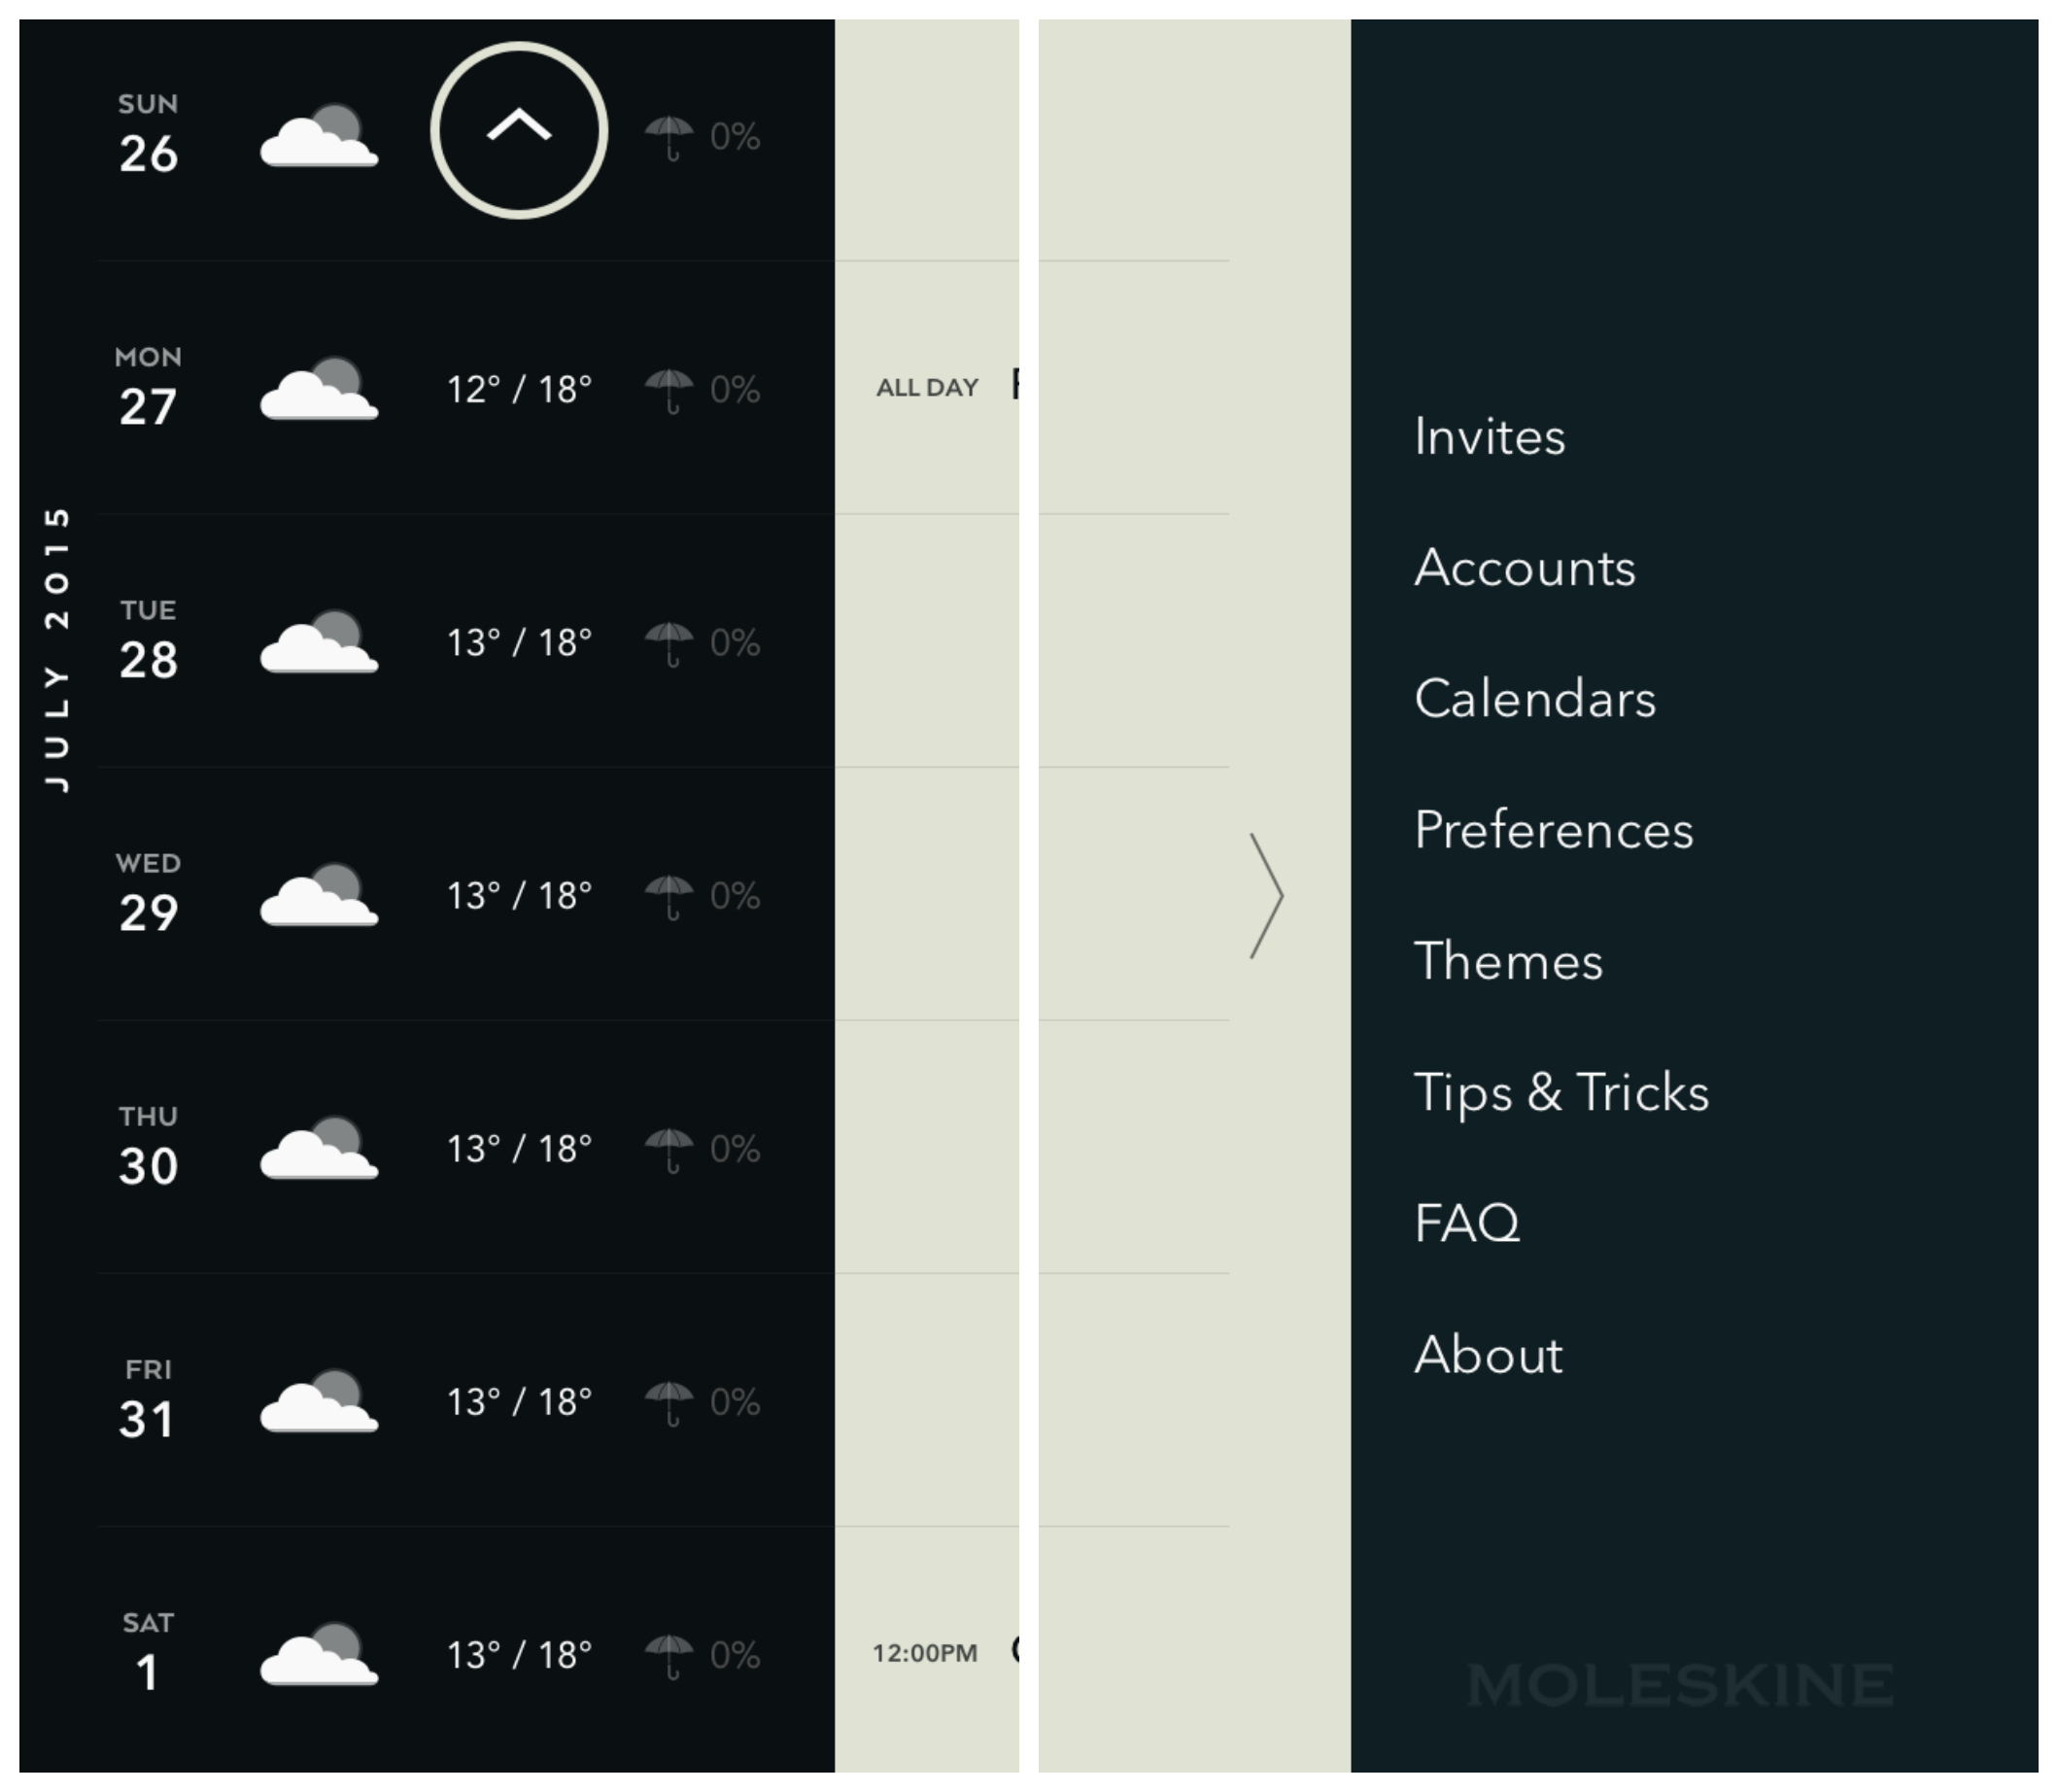 Moleskine's Timepage For IOS Is The Perfect Minimalist